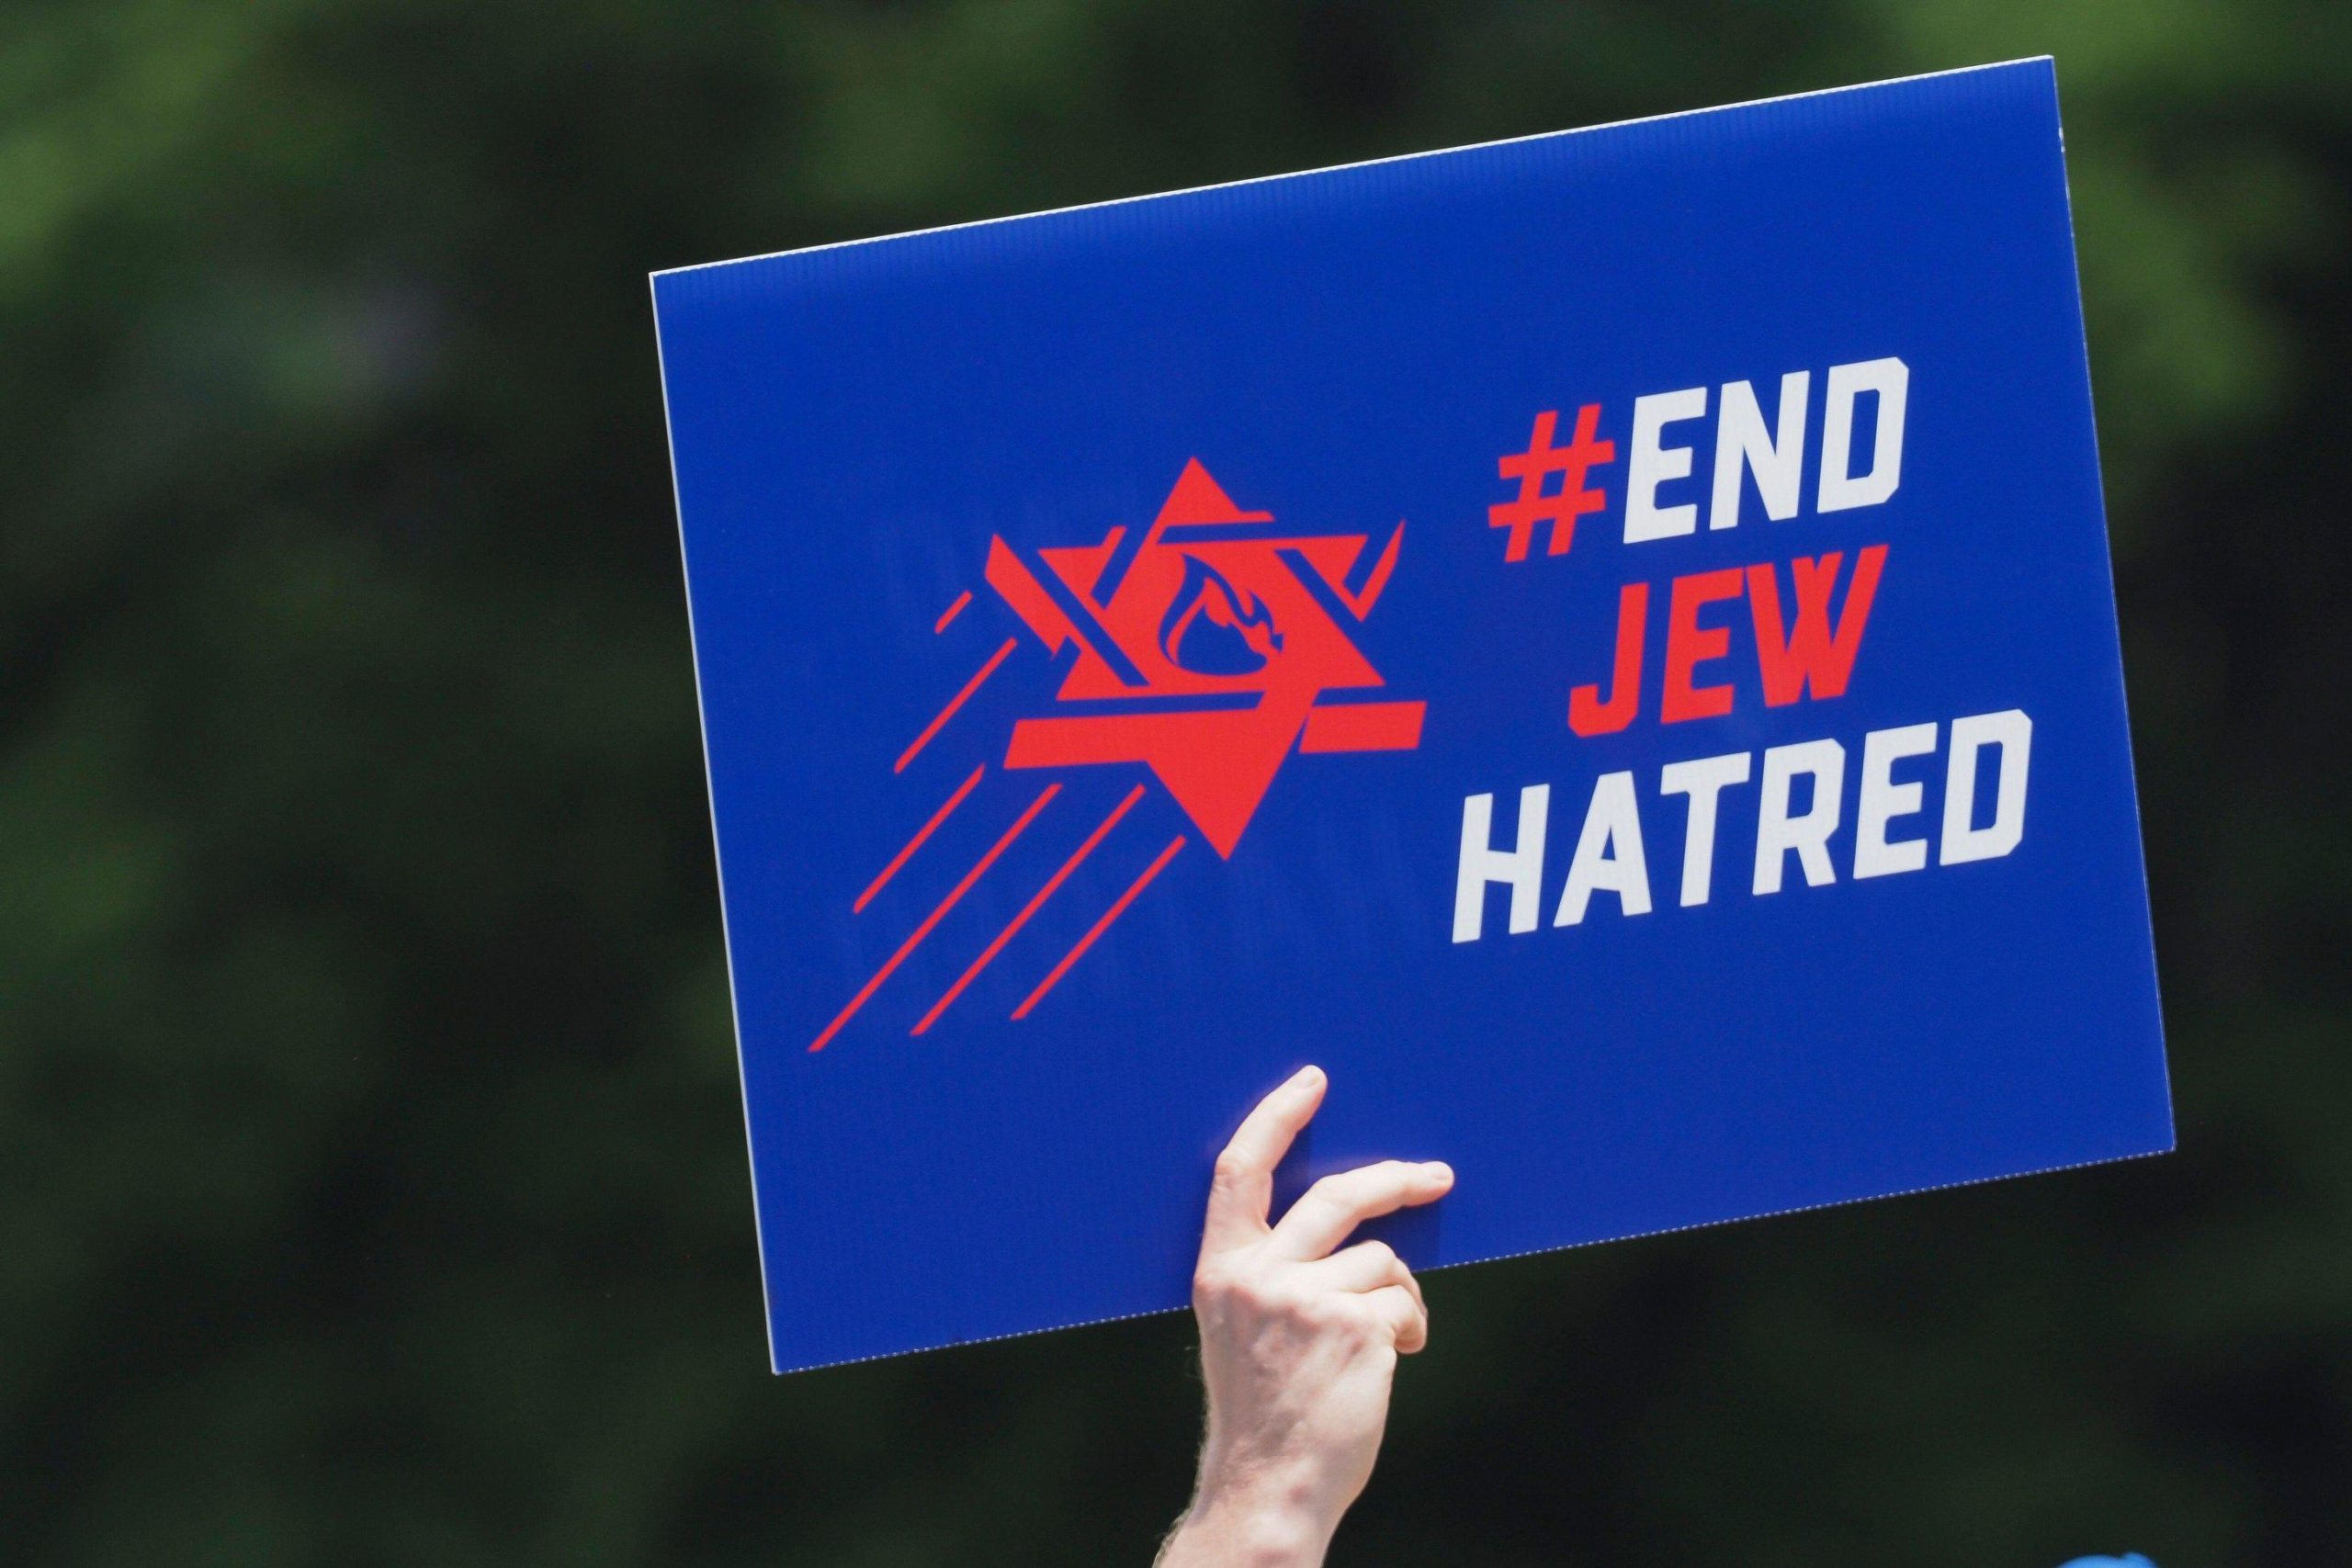 Social Media Giants Failed to Act on 84% of Cases of Online Antisemitic Hate: Report Suggests